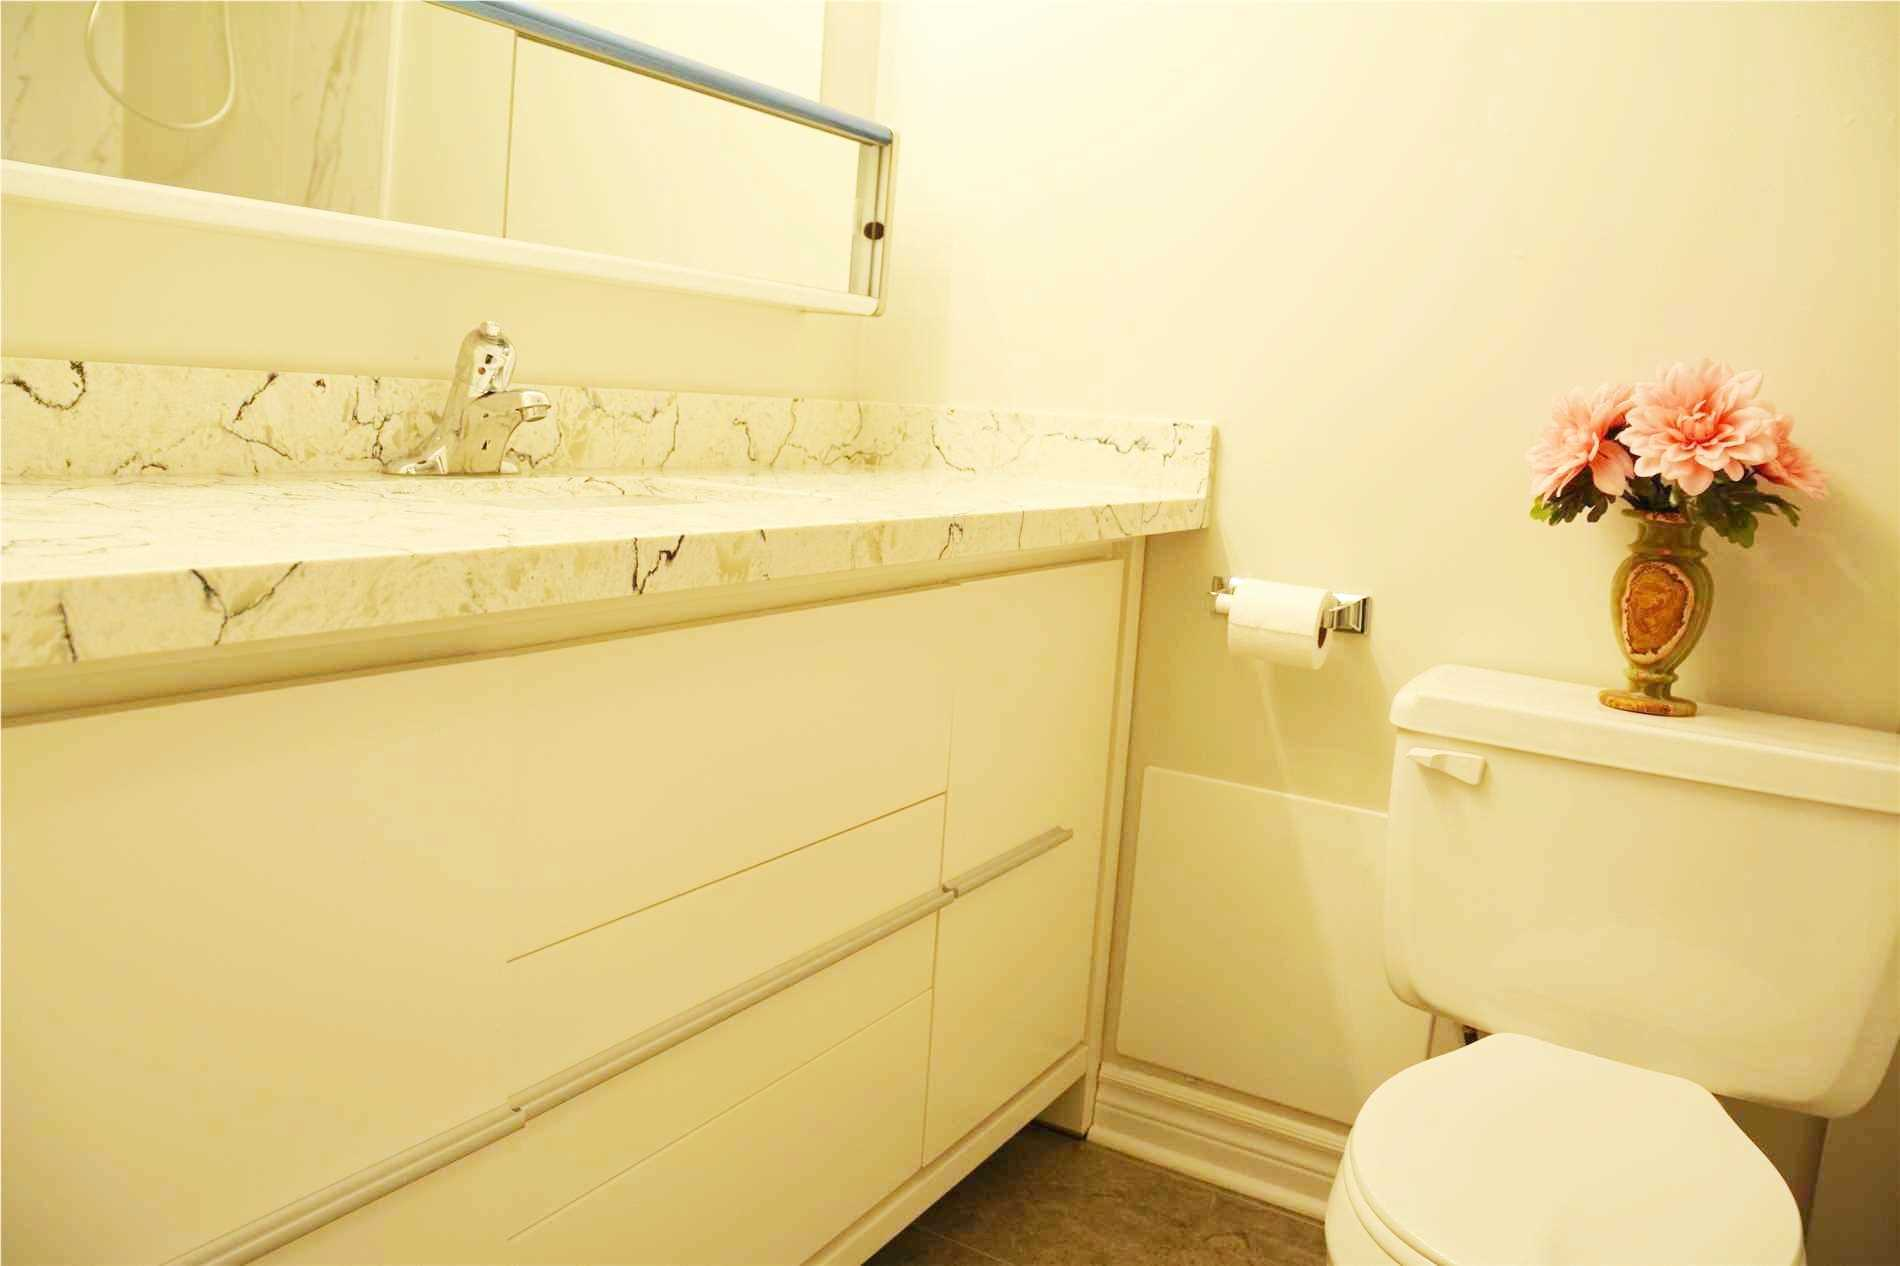 Image 5 of 14 showing inside of 3 Bedroom Condo Apt Apartment for Lease at 205 Hilda Ave Unit# 2104, Toronto M2M4B1